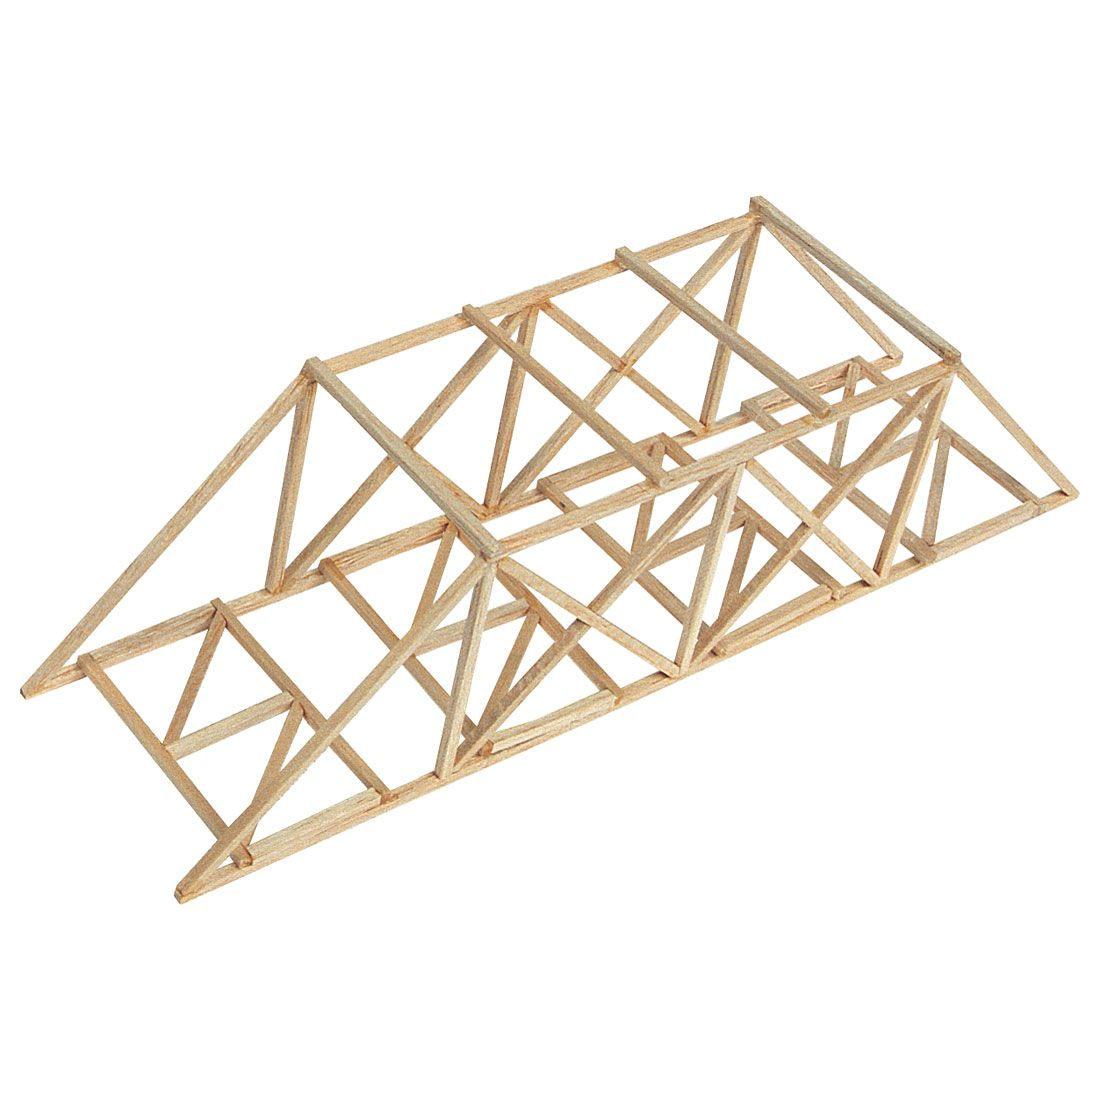 Balsa Wood Bridge Testing Device At Home Balsa Bridges Falling